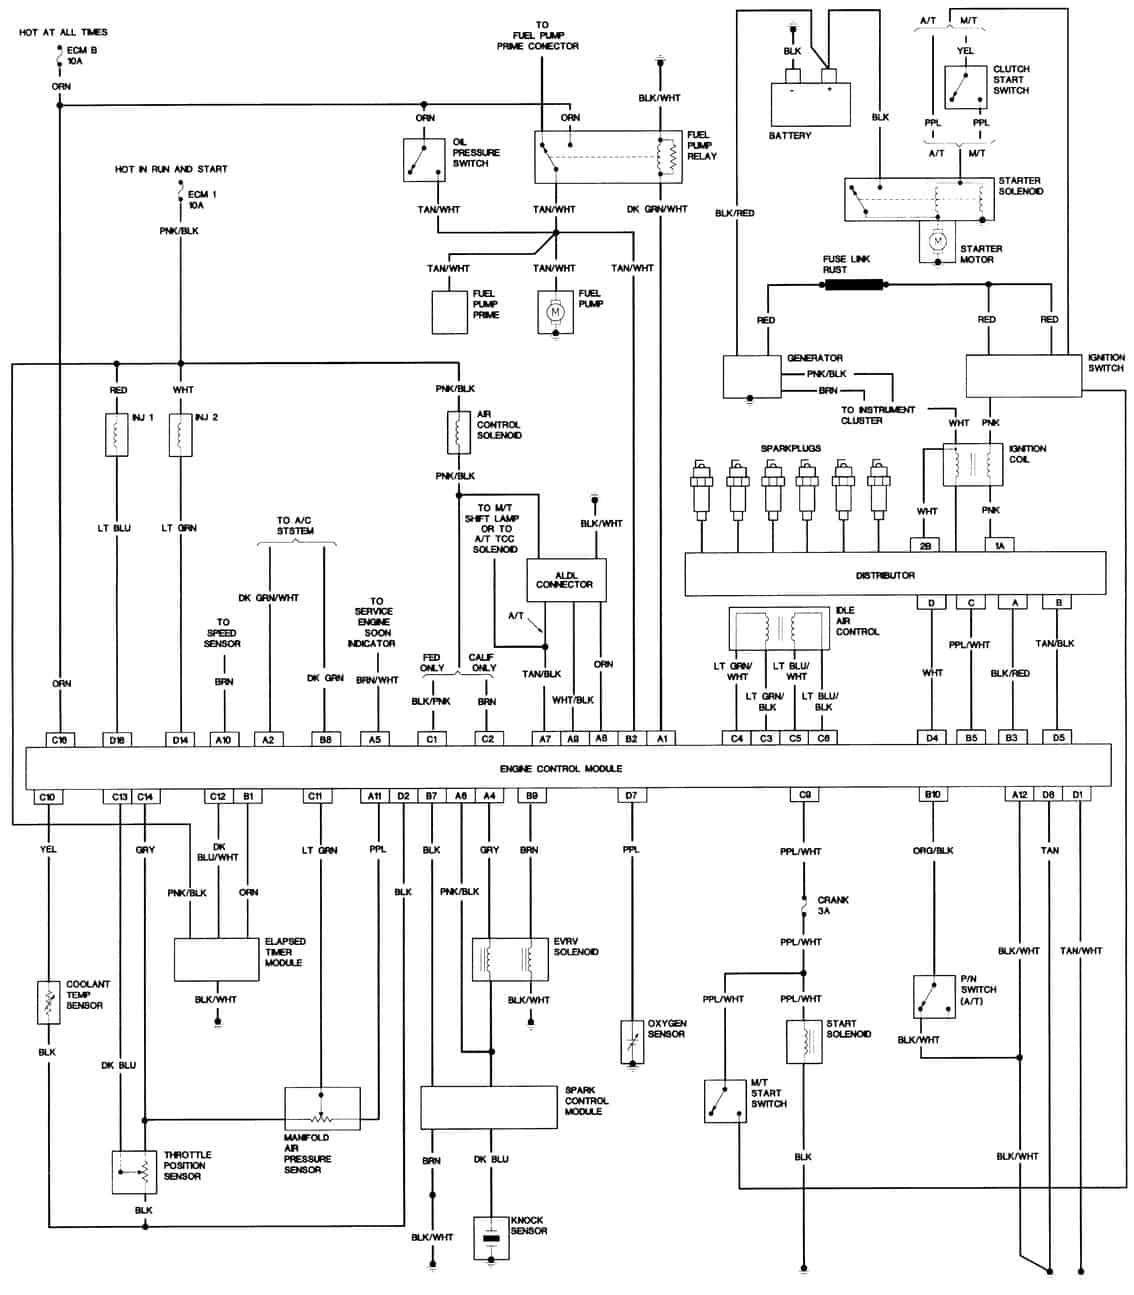 2000 S10 Wiring Diagram Library Engine No Spark 1988 Chevy S 10 V6 Freeautomechanic Advice Pickup